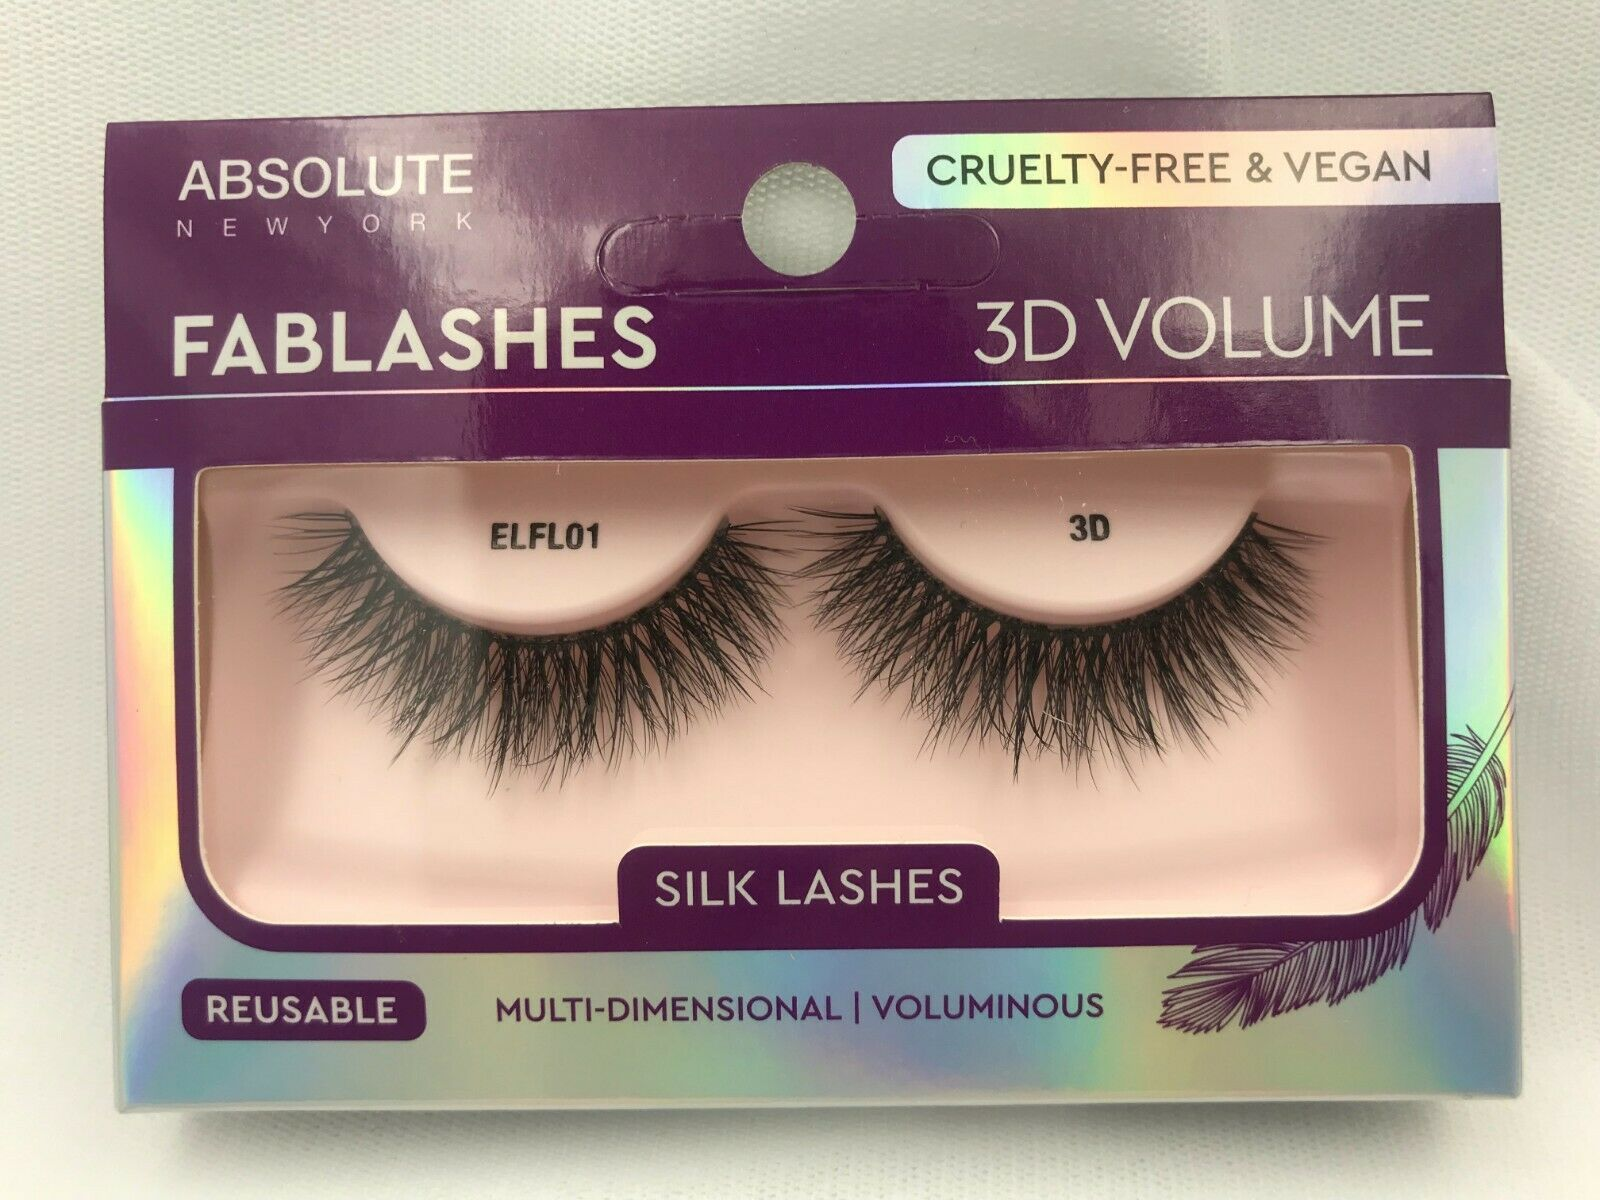 Primary image for ABSOLUTE NY 3D VOLUME FABLASHES SILK LASHES CRUELTY FREE & VEGAN REUSABLE ELFL01